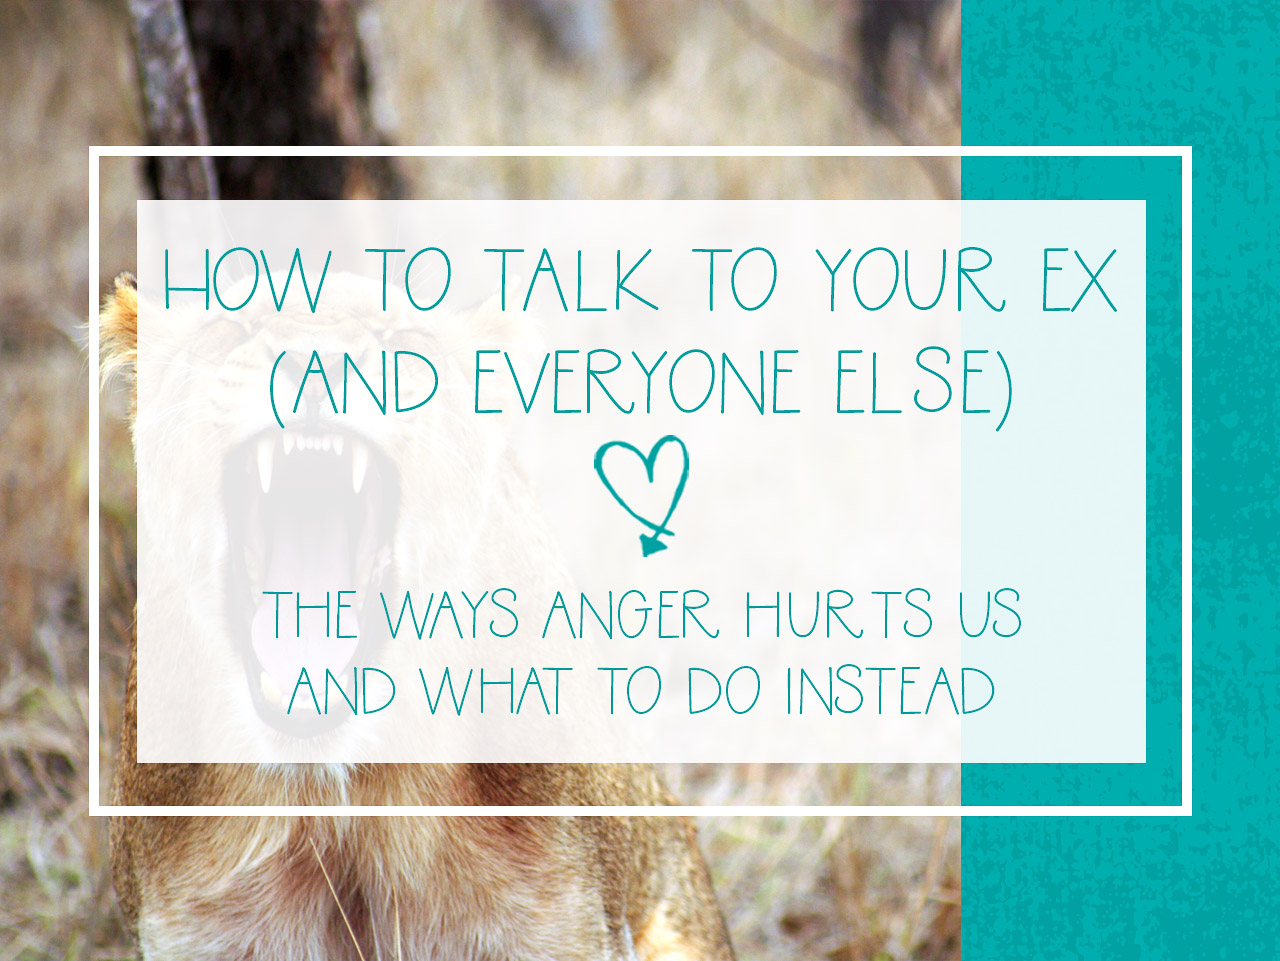 what to talk about with your ex